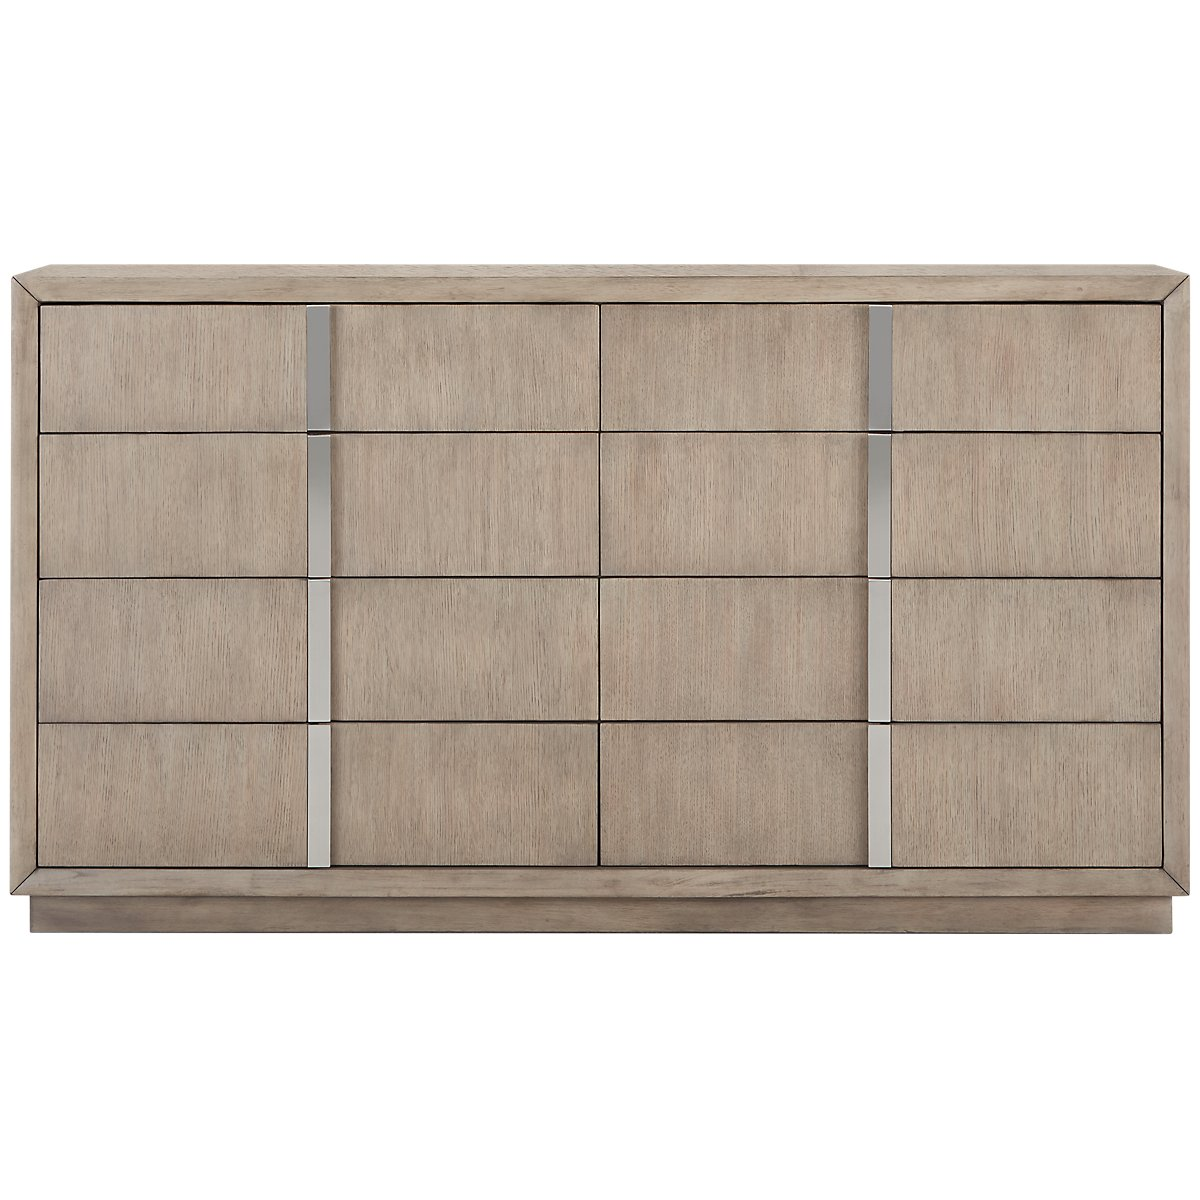 Gramercy Light Tone Dresser